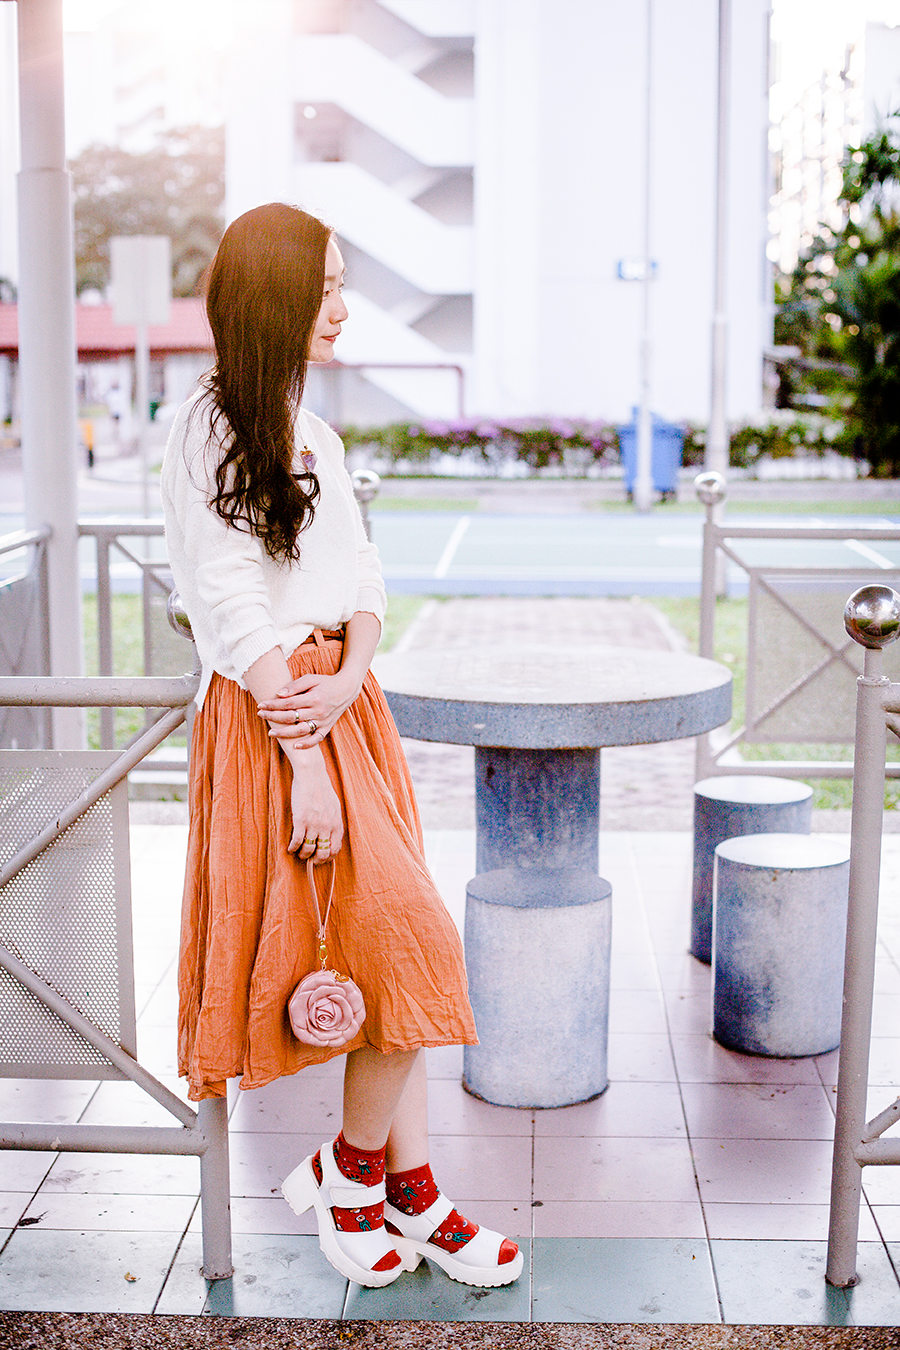 Sunset pastel outfit.